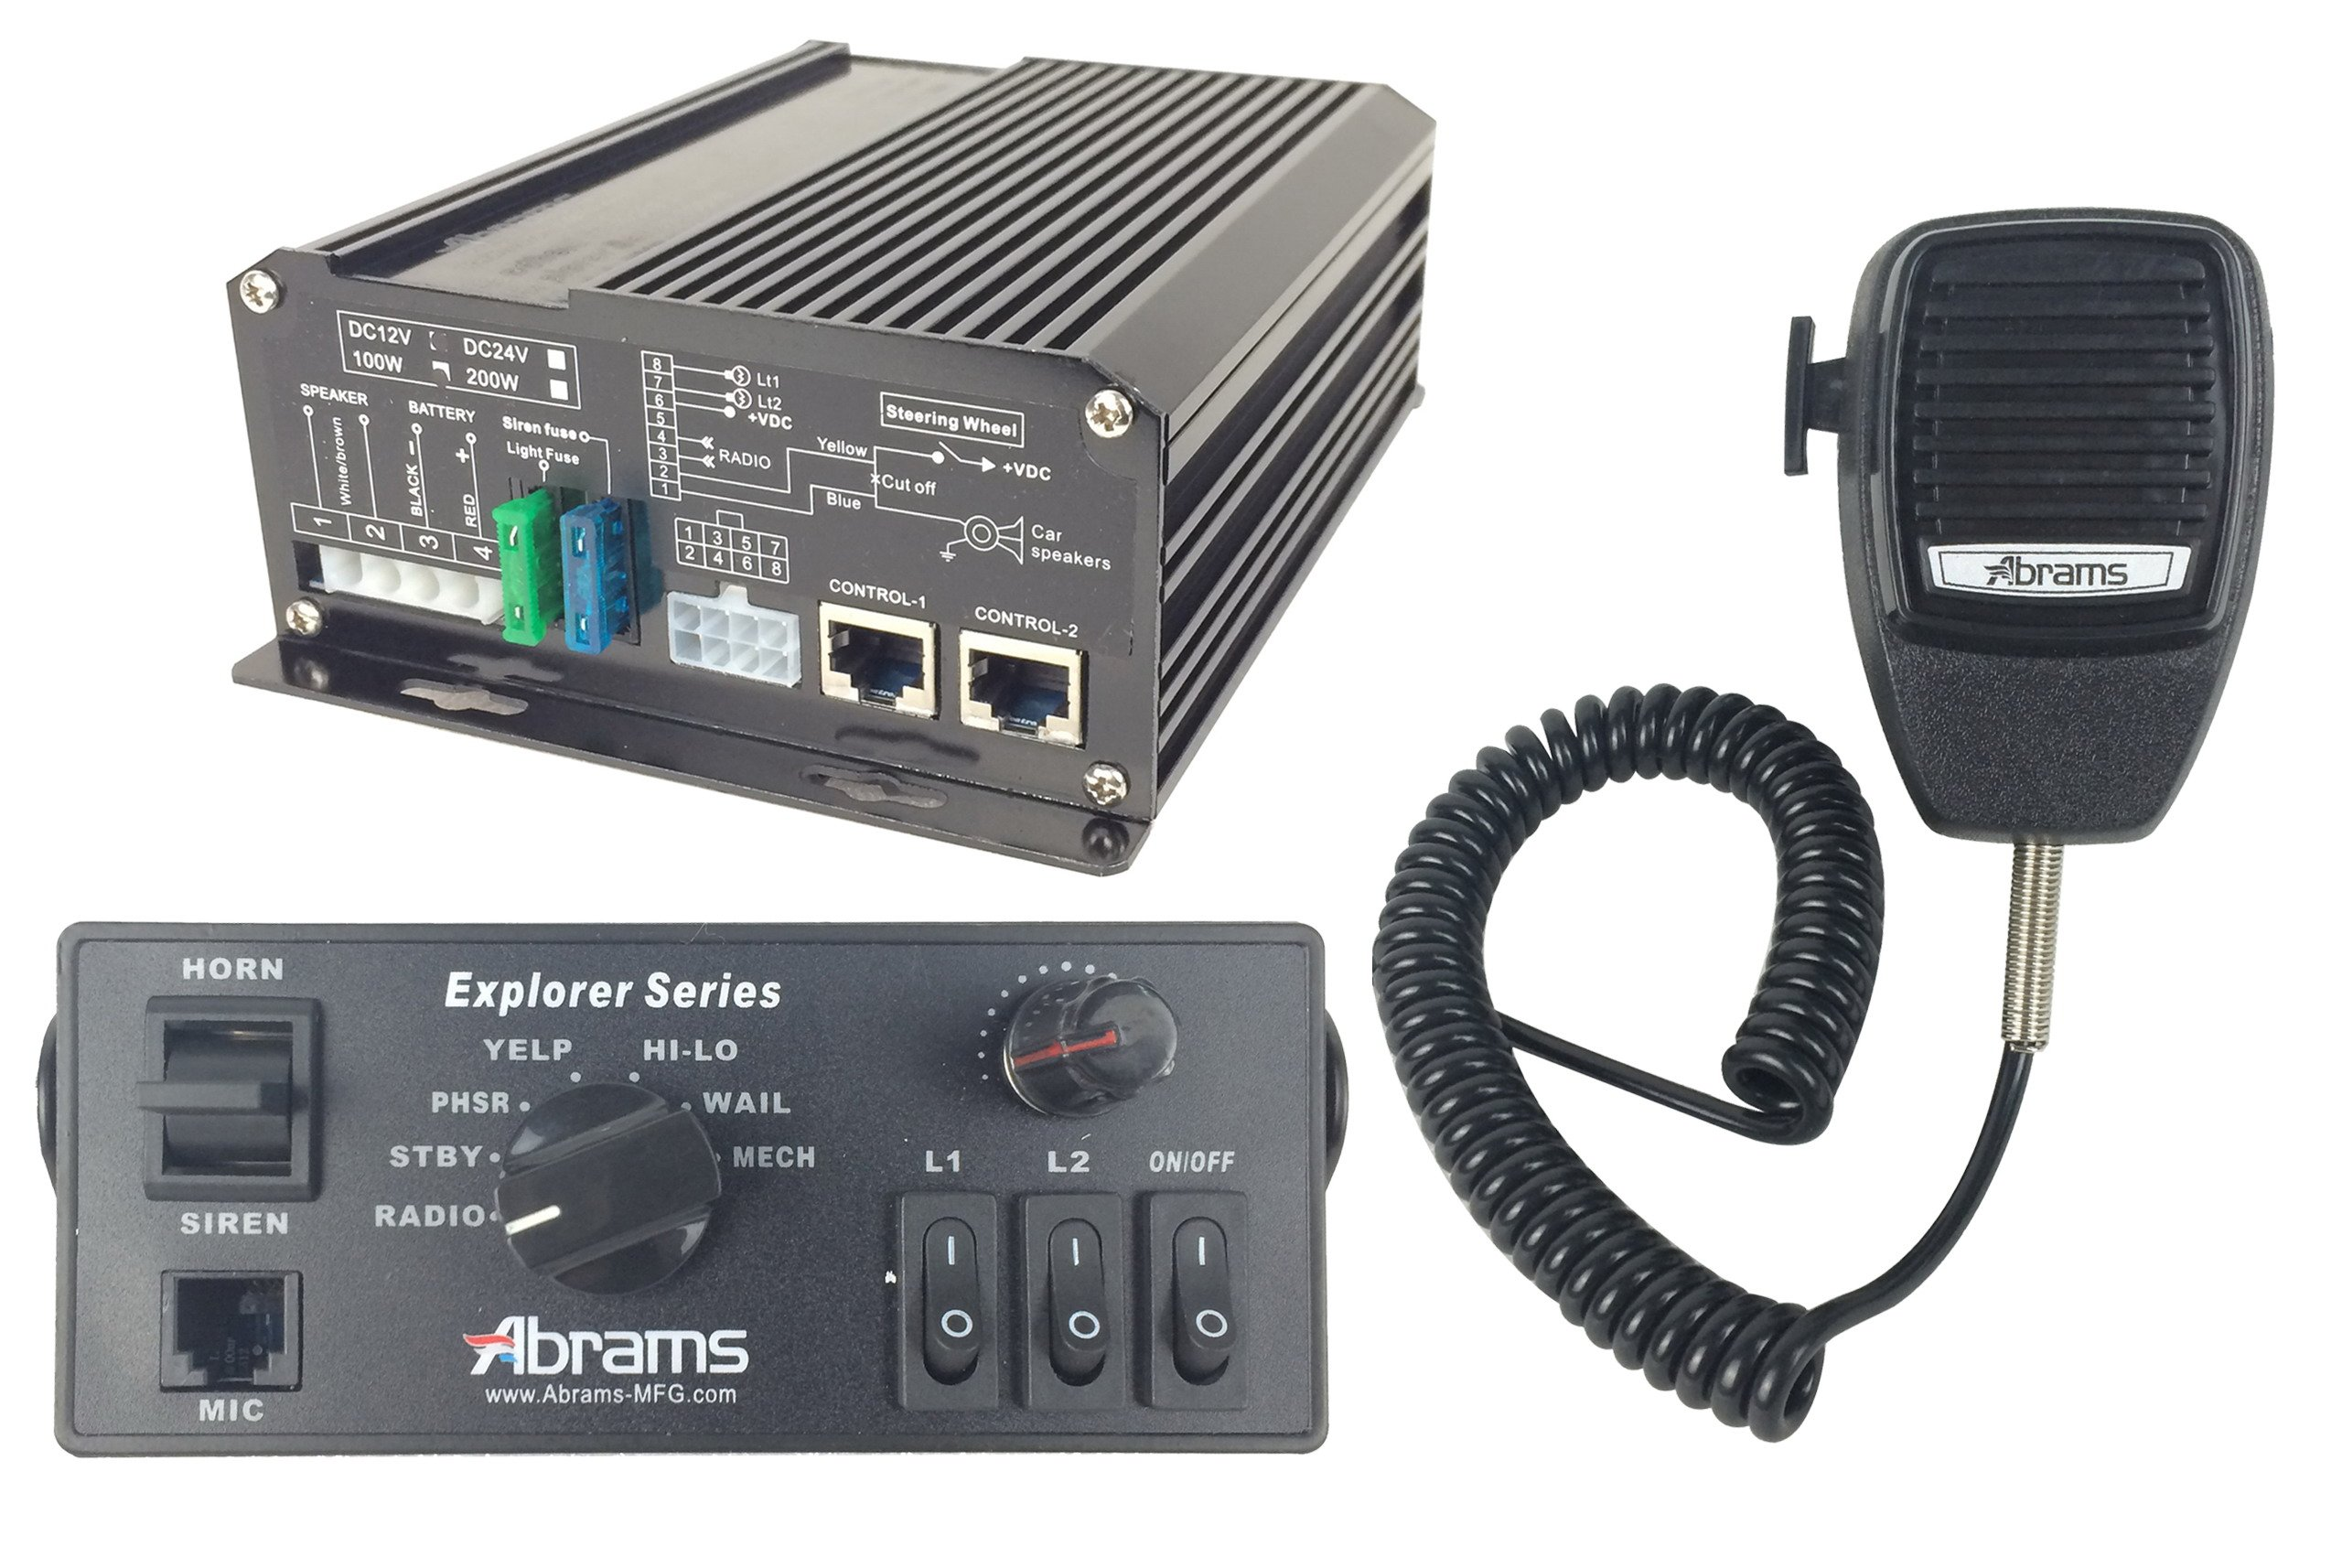 ABRAMS EXP-ULTRA-KIT/100-C Explorer 100W Console Mount Siren System Set with Mechanical Tones, Comes with PA Mircophone & 100W Ultra Siren Speaker by Abrams